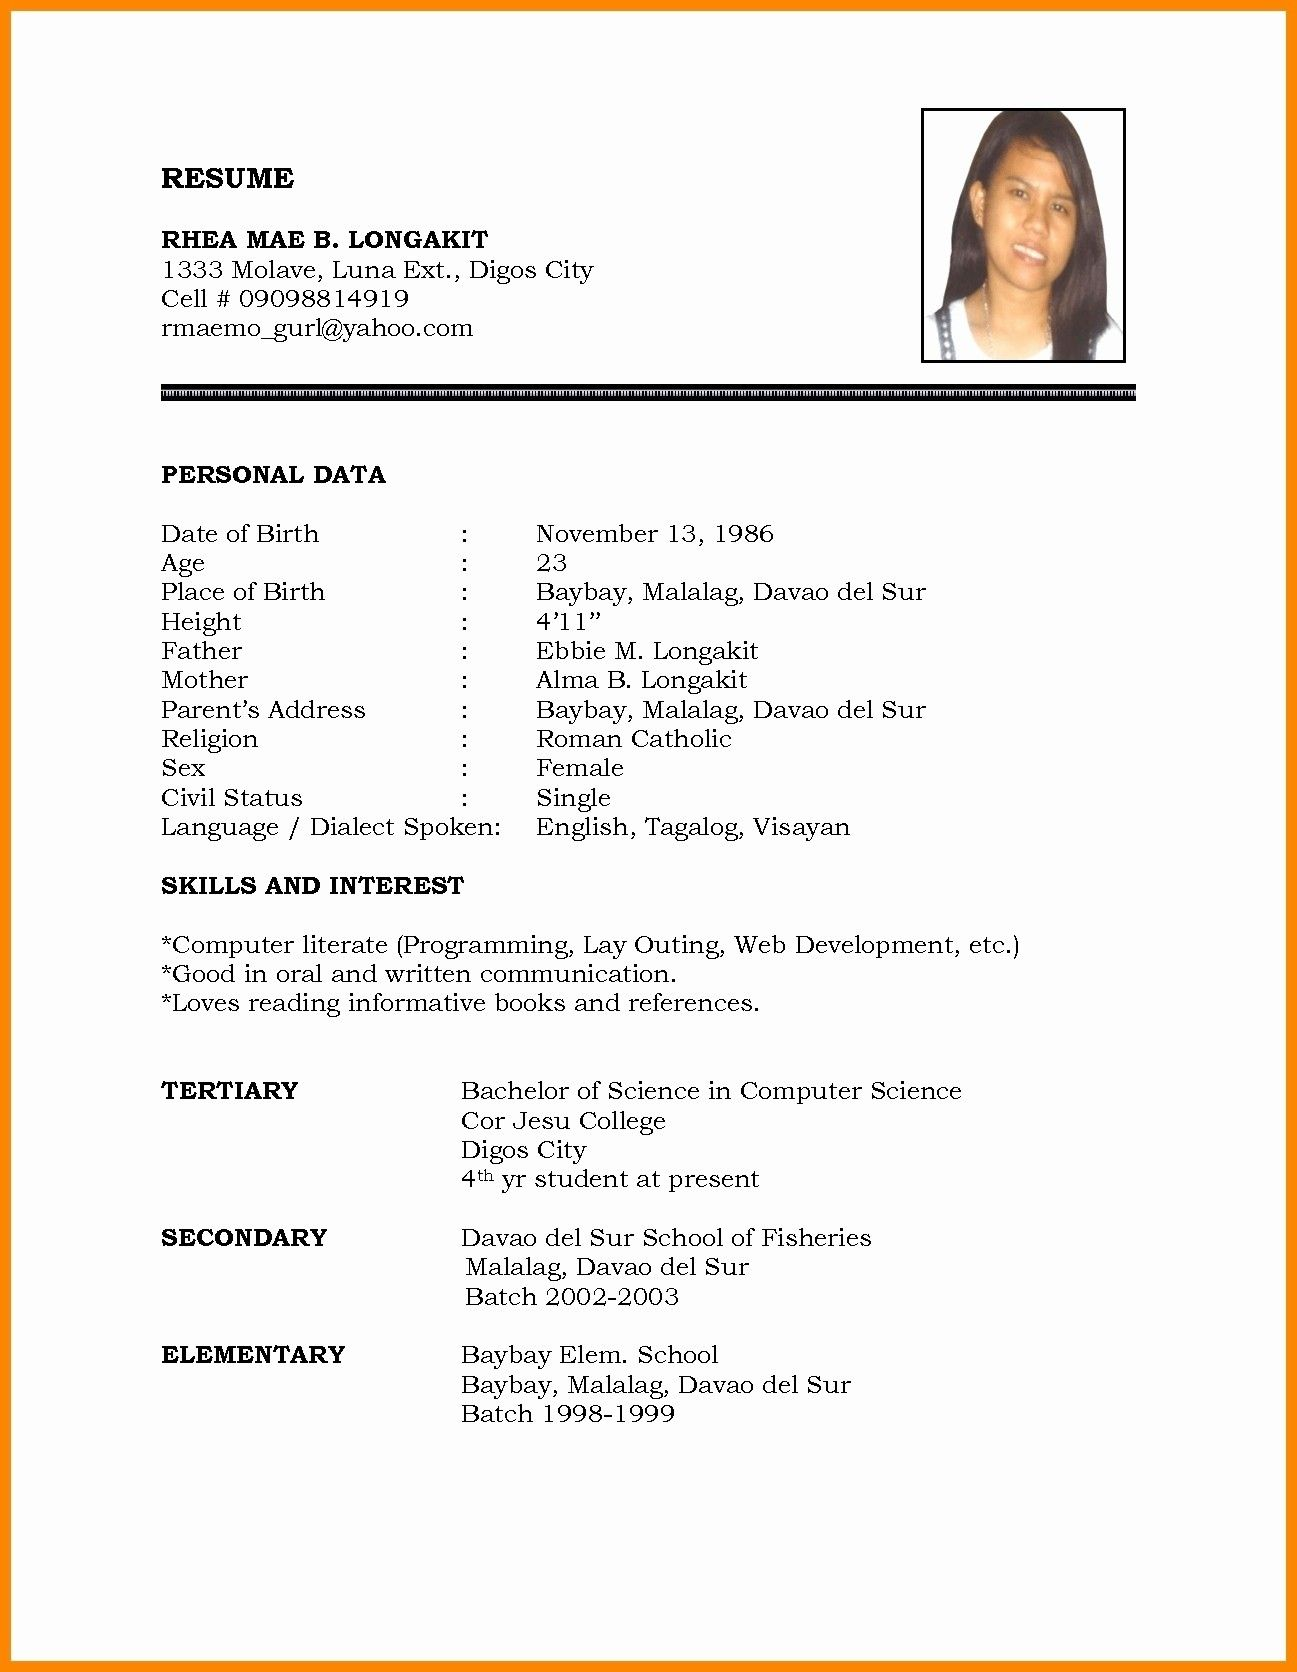 Marriage Resume Format Word File Inspirational Biodata 2 Desktop